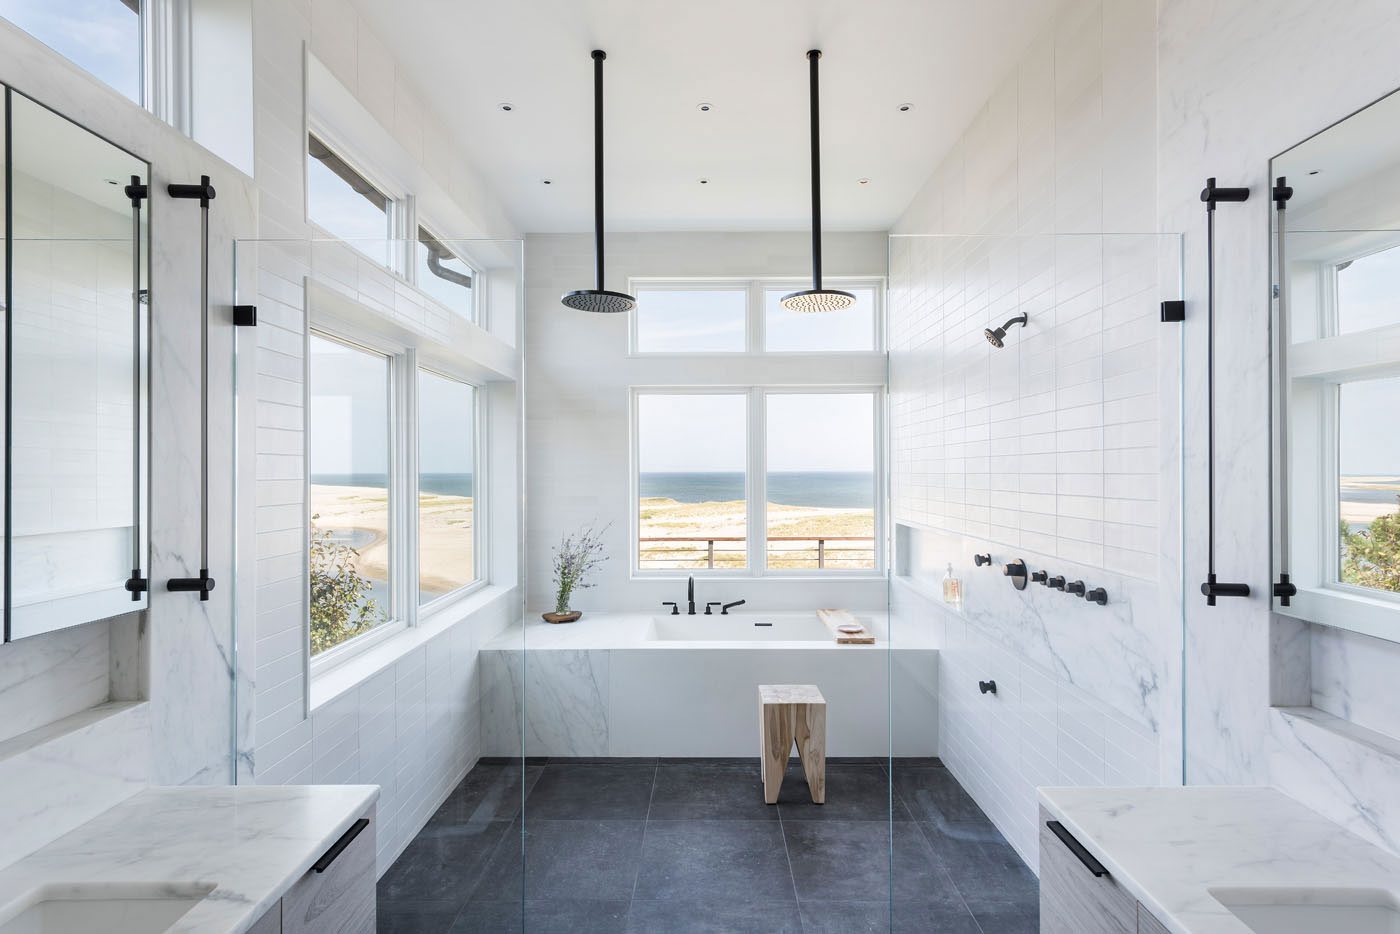 Wetroom bathroom design for a modern oceanfront Cape home built by S.J. Overstreet Construction Co., Inc.